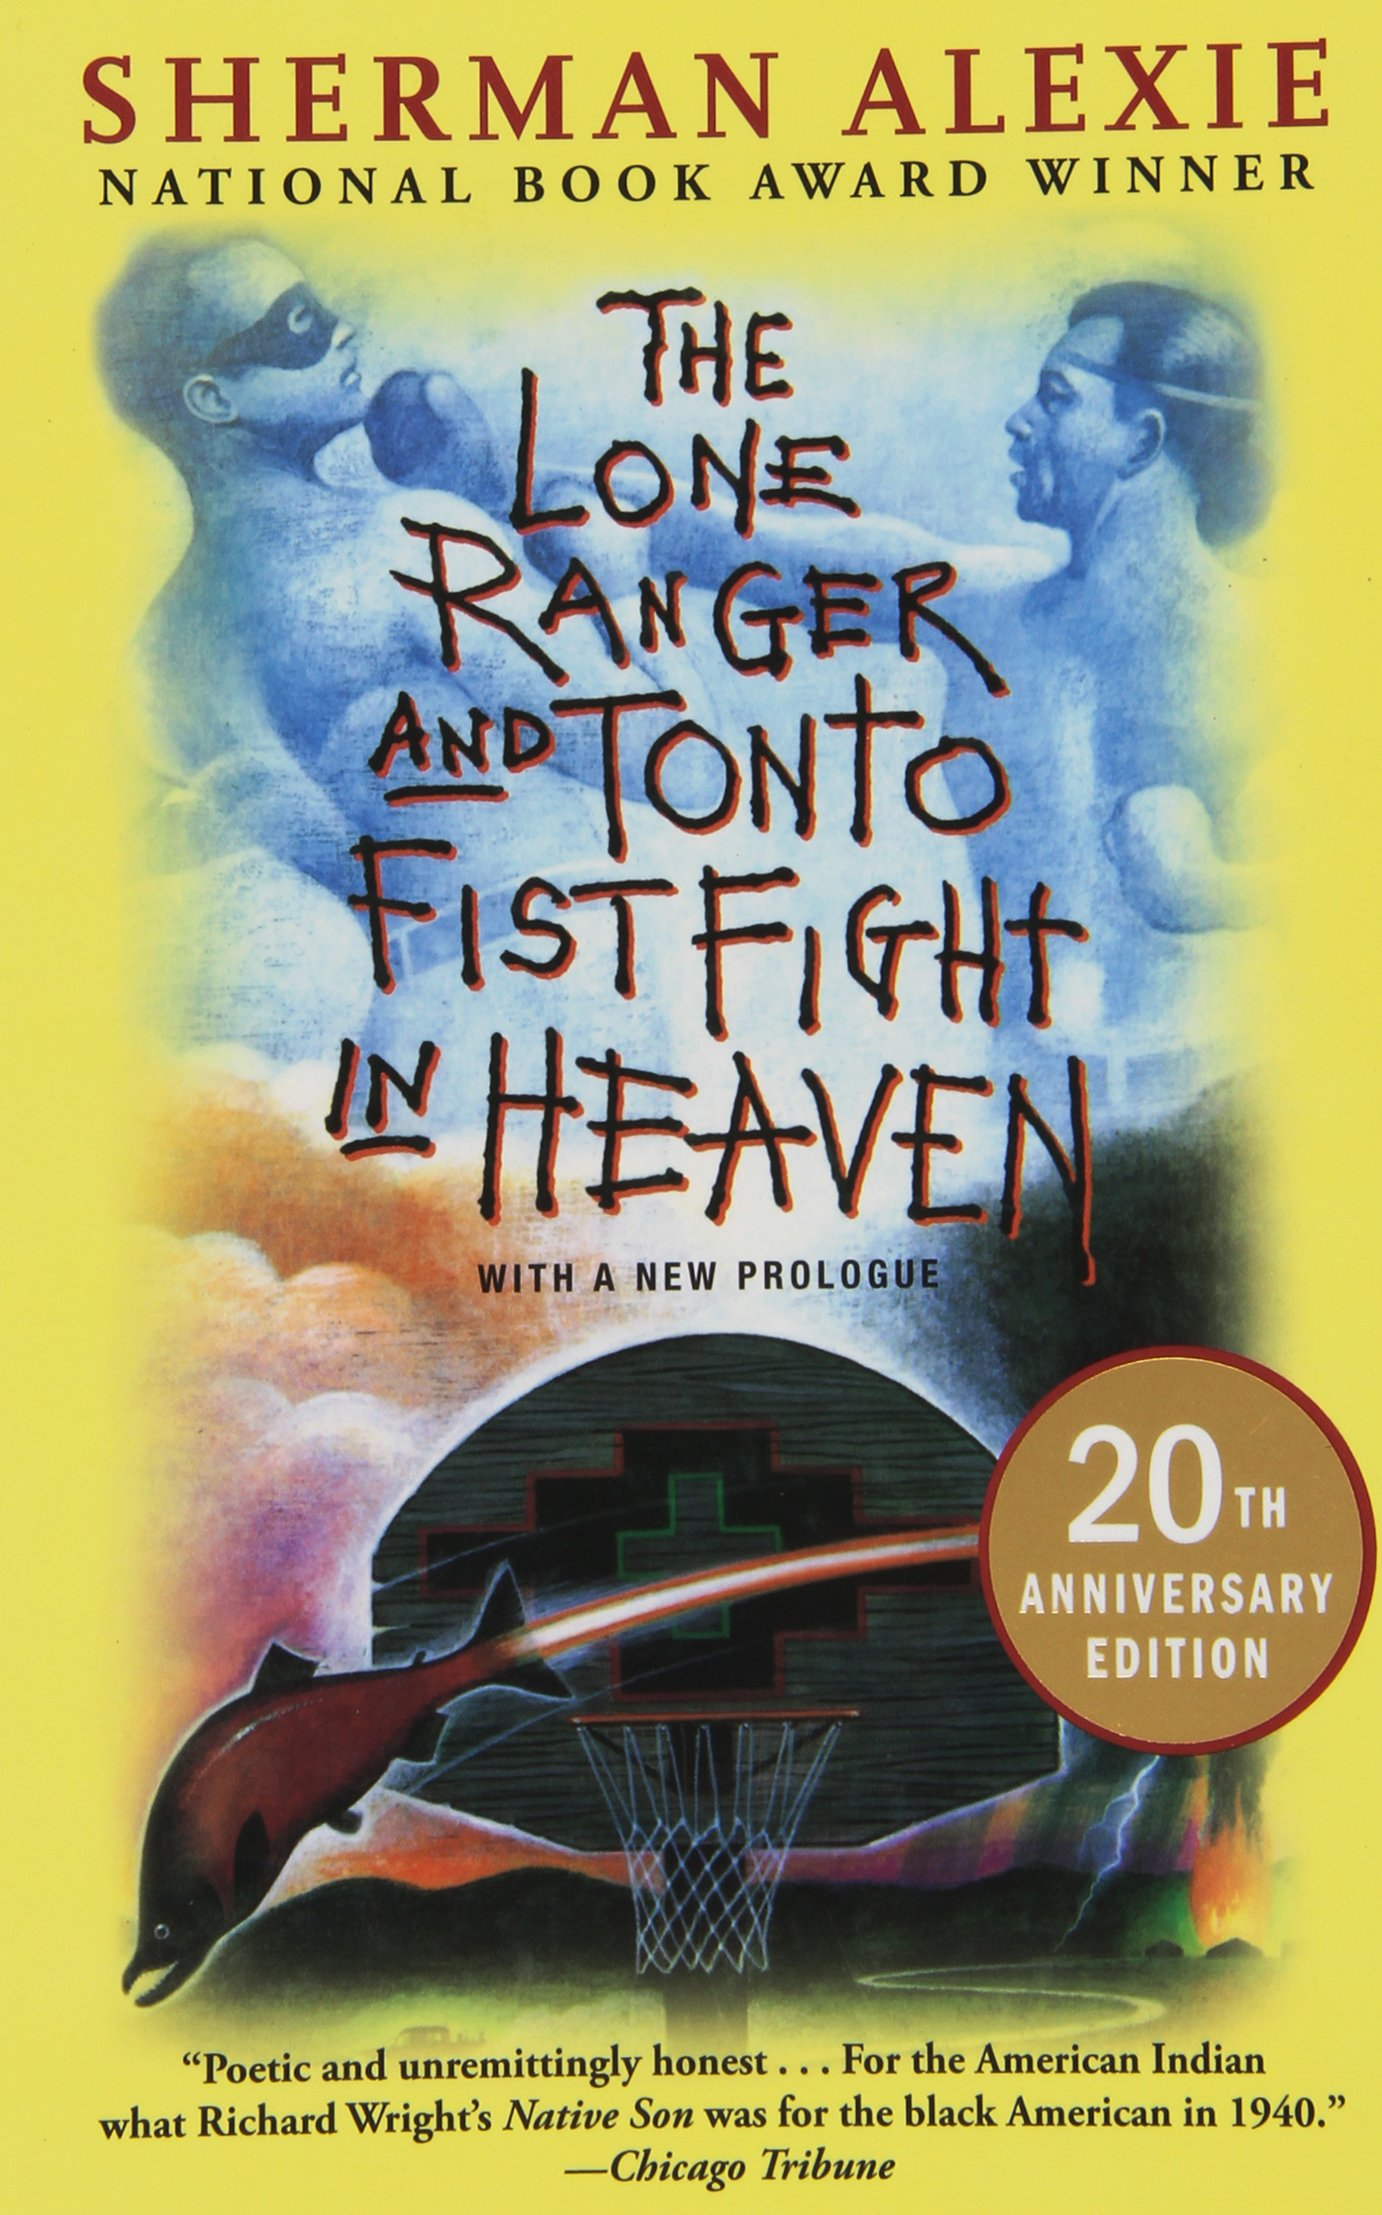 the lone ranger and tonto fistfight in heaven 20th anniversary the lone ranger and tonto fistfight in heaven 20th anniversary edition sherman alexie 9780802121998 books ca